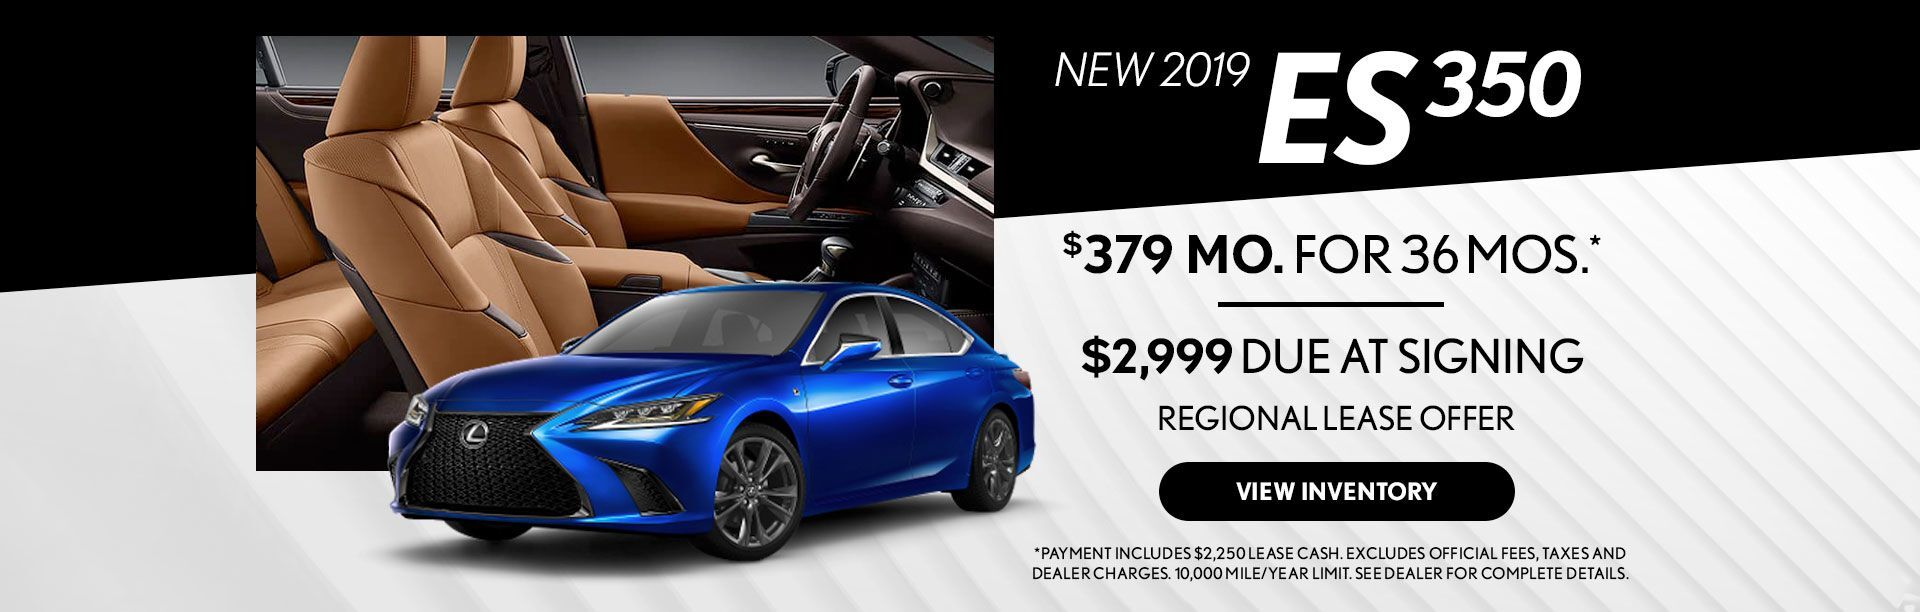 Lexus Dealership Concord CA | Pre-Owned Cars Lexus of Concord